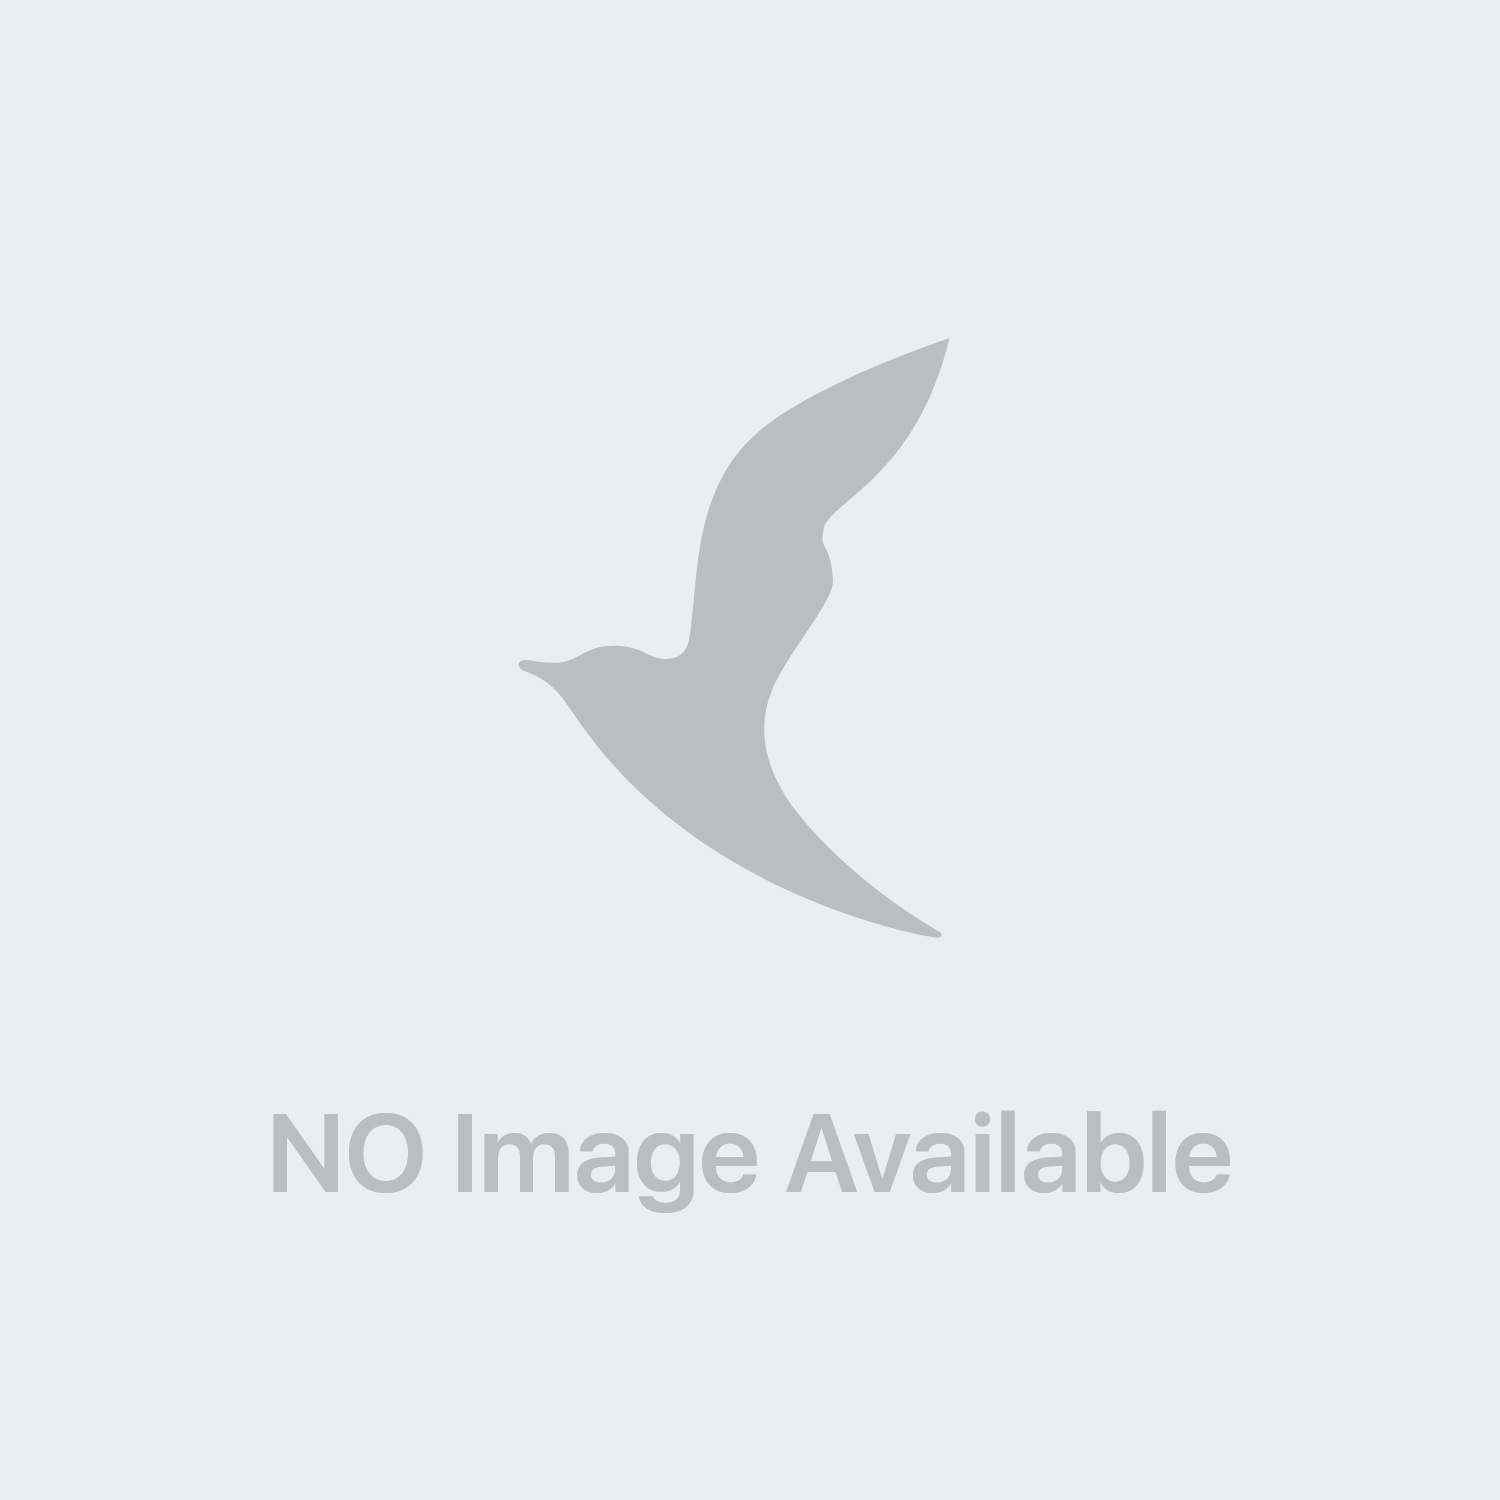 Lievitovit Program Integratore Capelli 60 Compresse